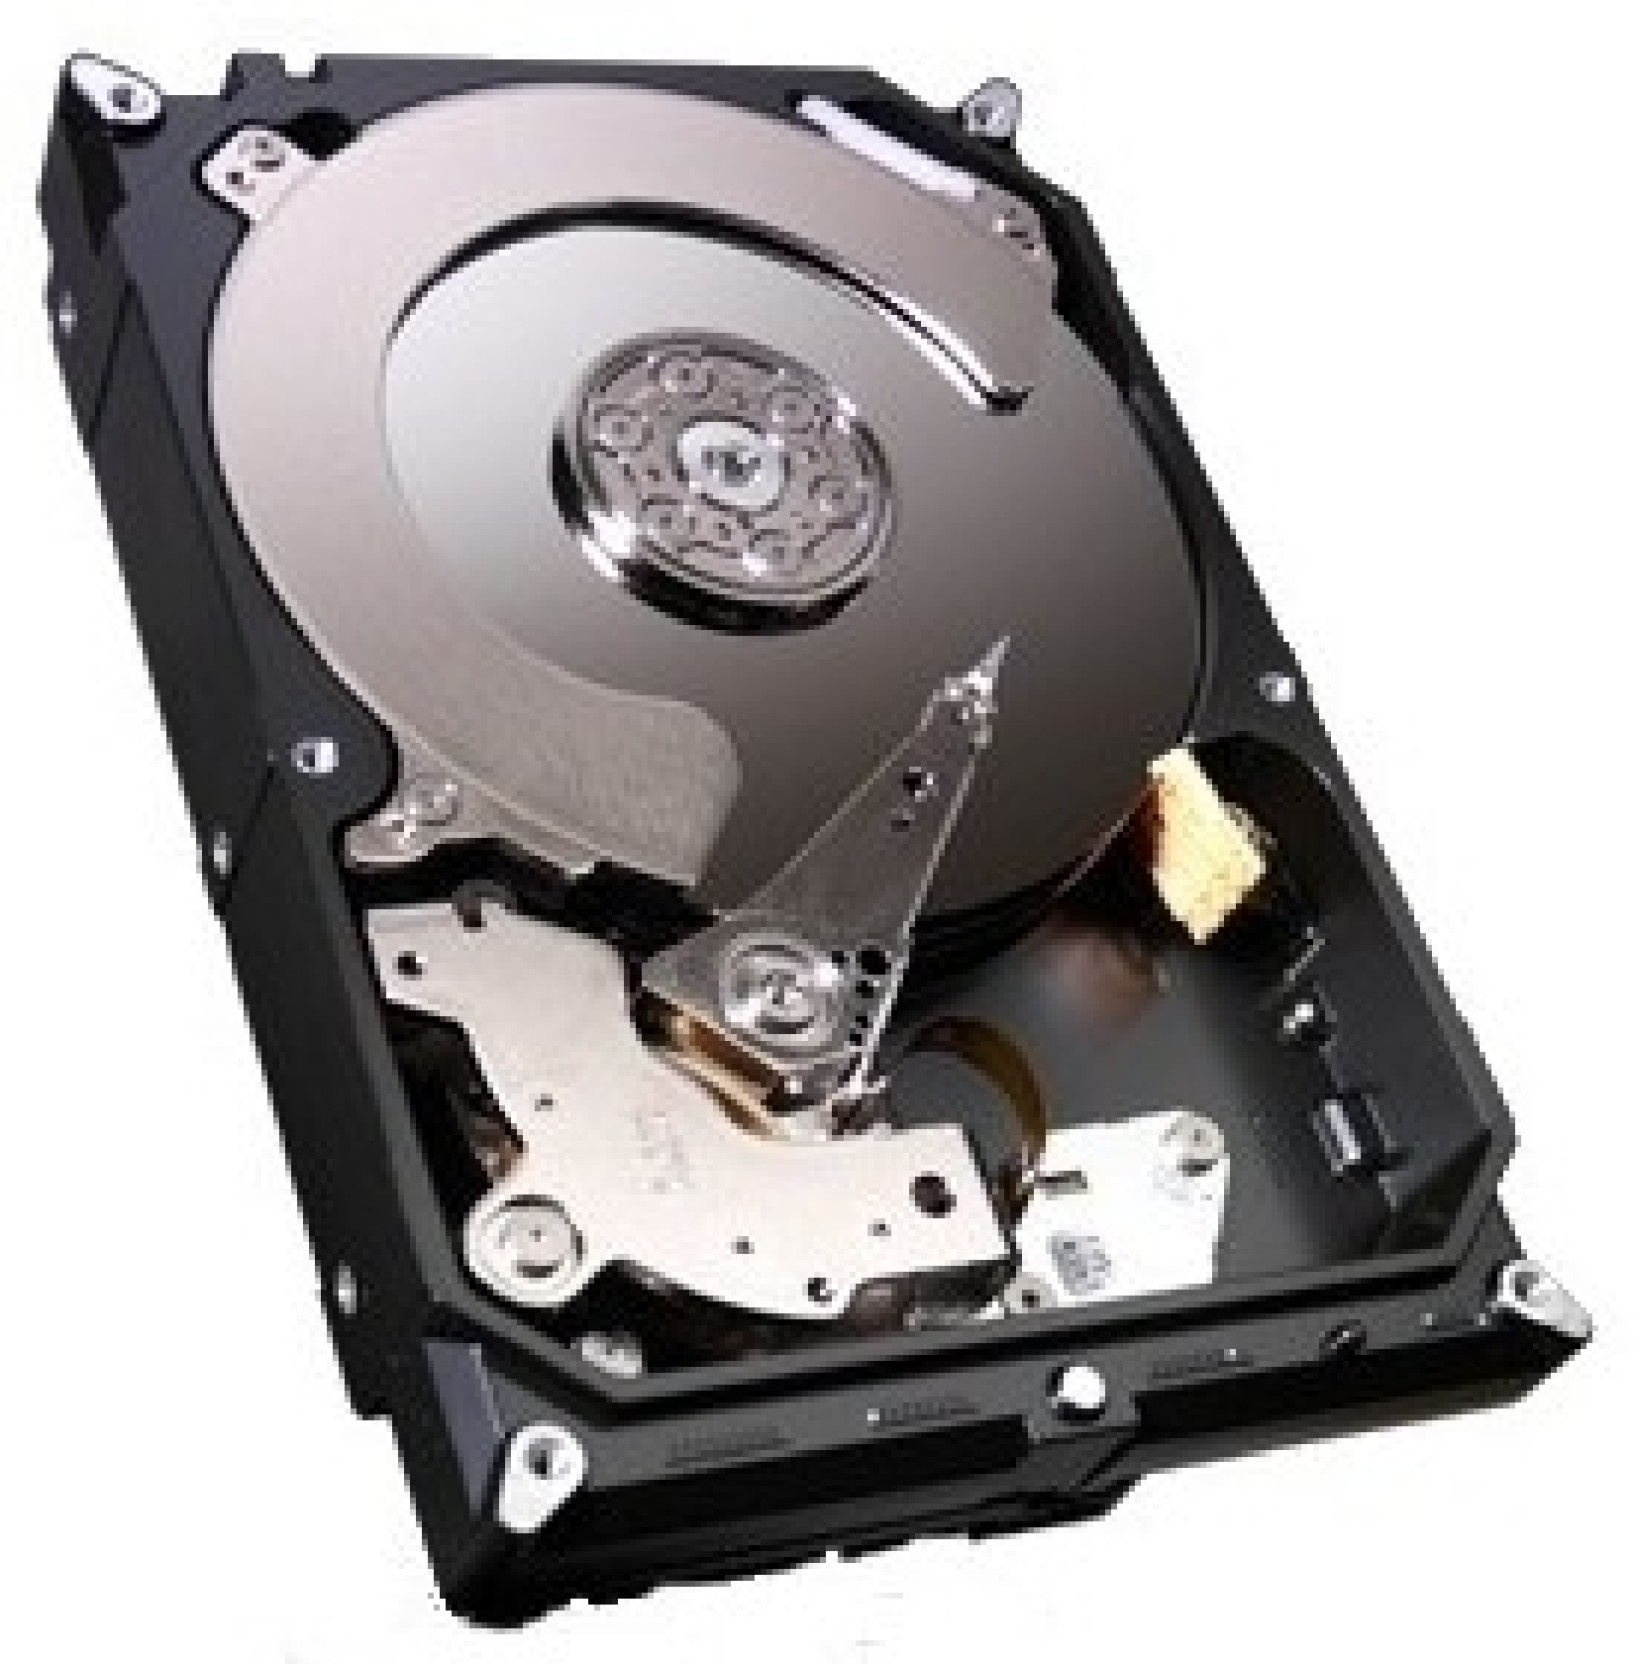 Daftar Harga Hardisk Hdd Internal Laptop Notebook Seagate 25 Inch Vetto Flash Stop Kontak V8206 R7 3m Universal Sni 2x 21a Usb30 Barracuda 500 Gb Desktop Hard Disk Drive 500gb